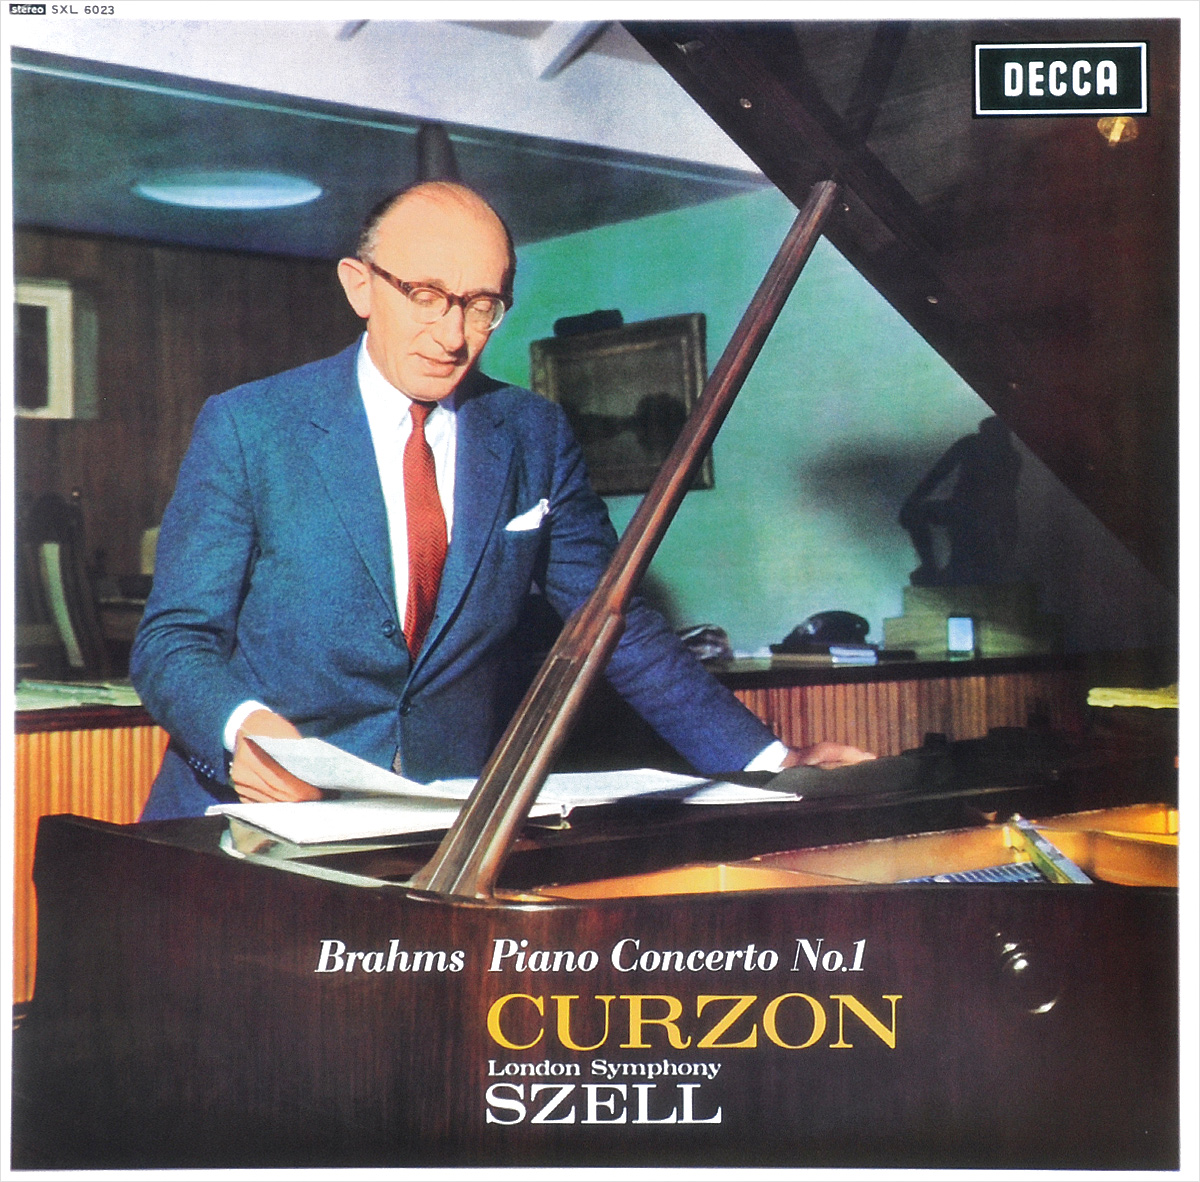 Джордж Селл,Клиффорд Курзон,The London Symphony Orchestra George Szell. Brahms. Piano Concerto No. 1 (LP) krystian zimerman brahms piano concerto no 1